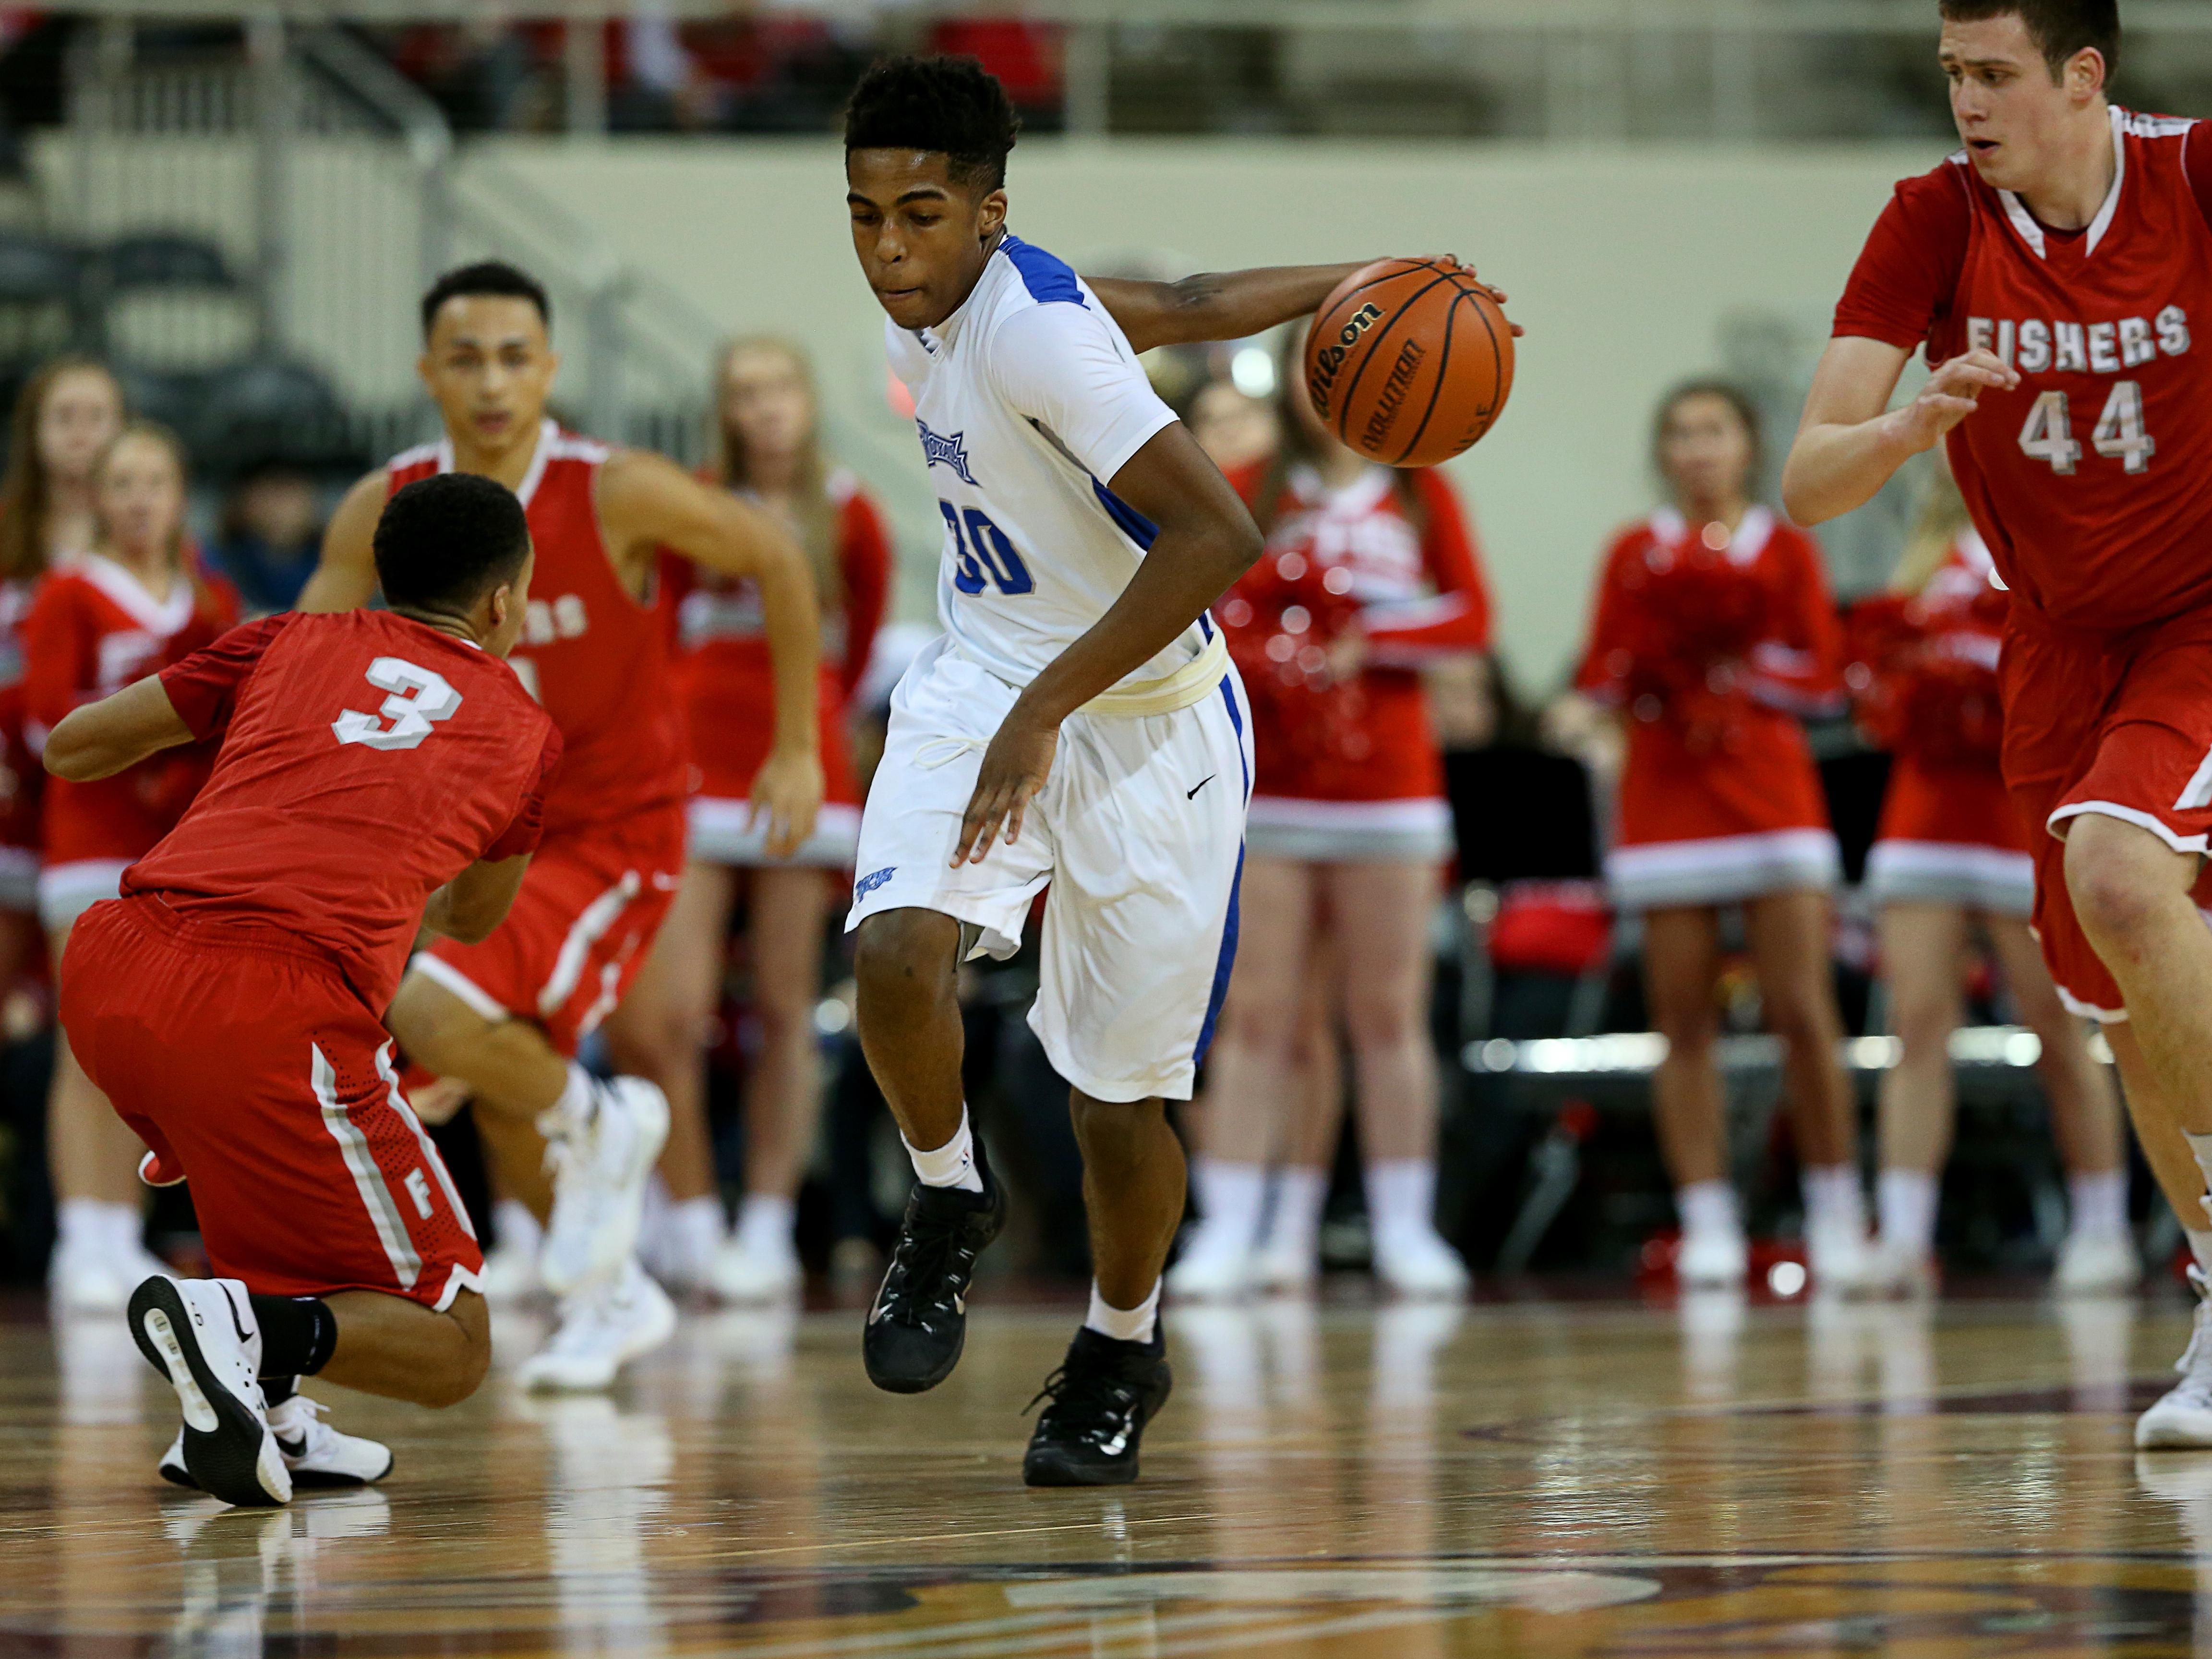 Hamilton SoutheasternÕs Noah Smith (30) goes behind his back on a fast break against Fishers at the Indiana Farmers Coliseum on Dec. 18, 2015.